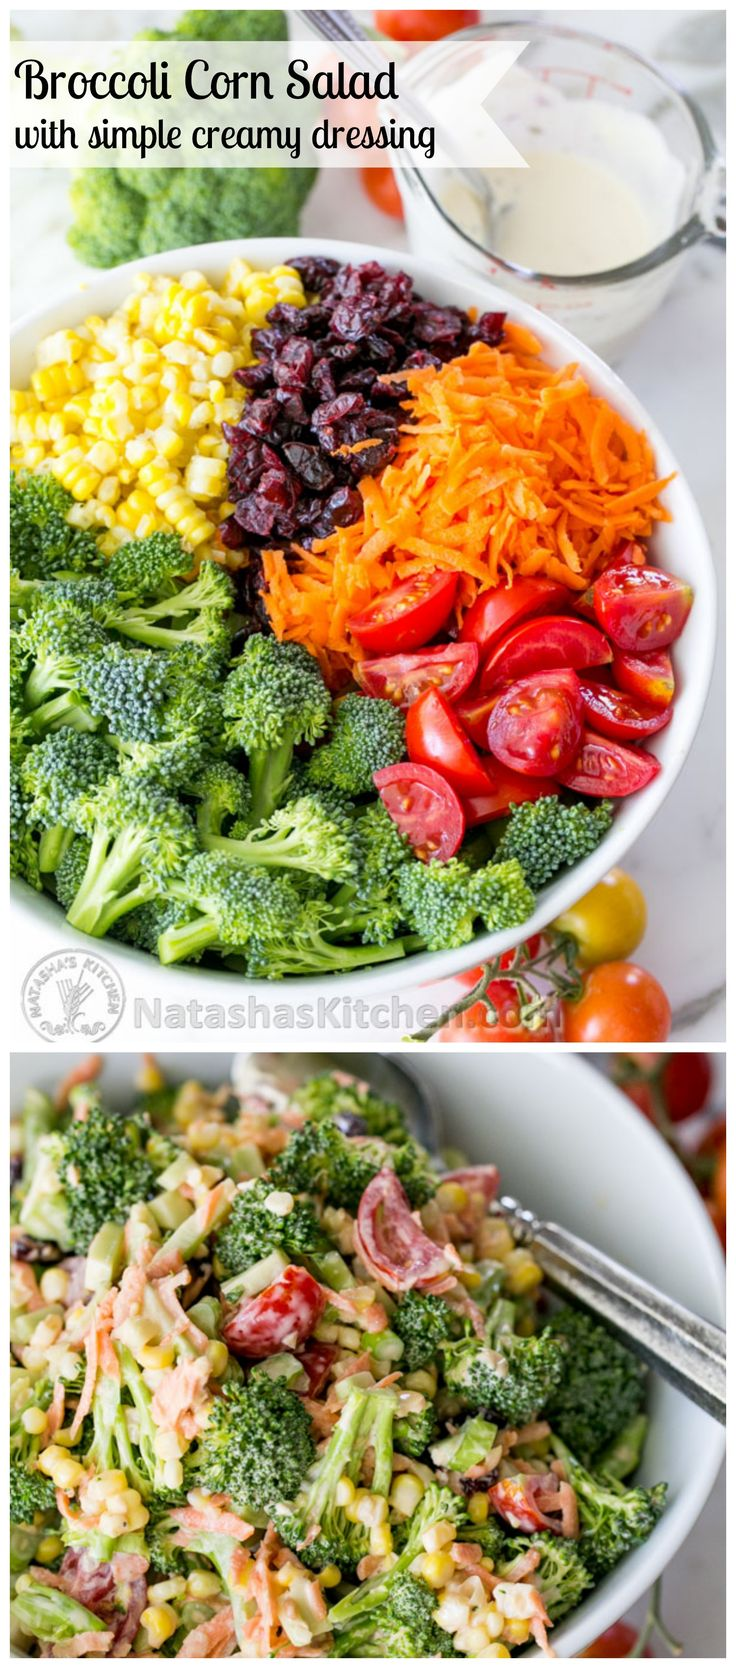 Broccoli Corn and Tomato Salad. This one's a keeper! @natashaskitchen